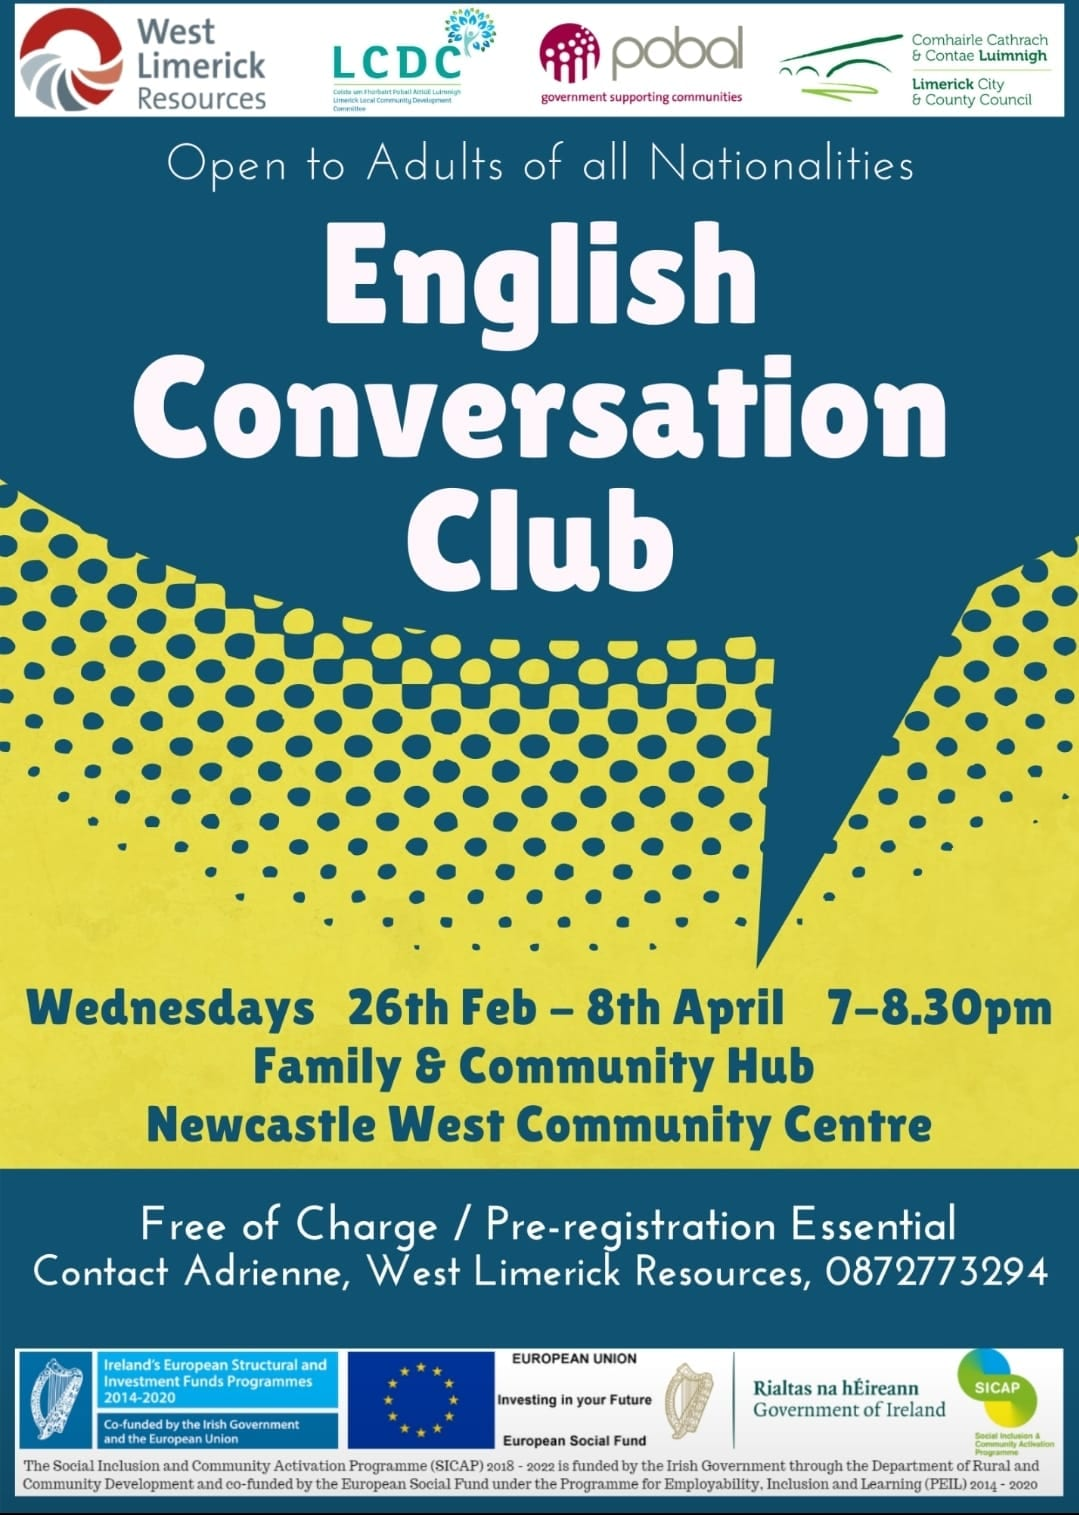 English Conversation Club available at West Limerick Resources